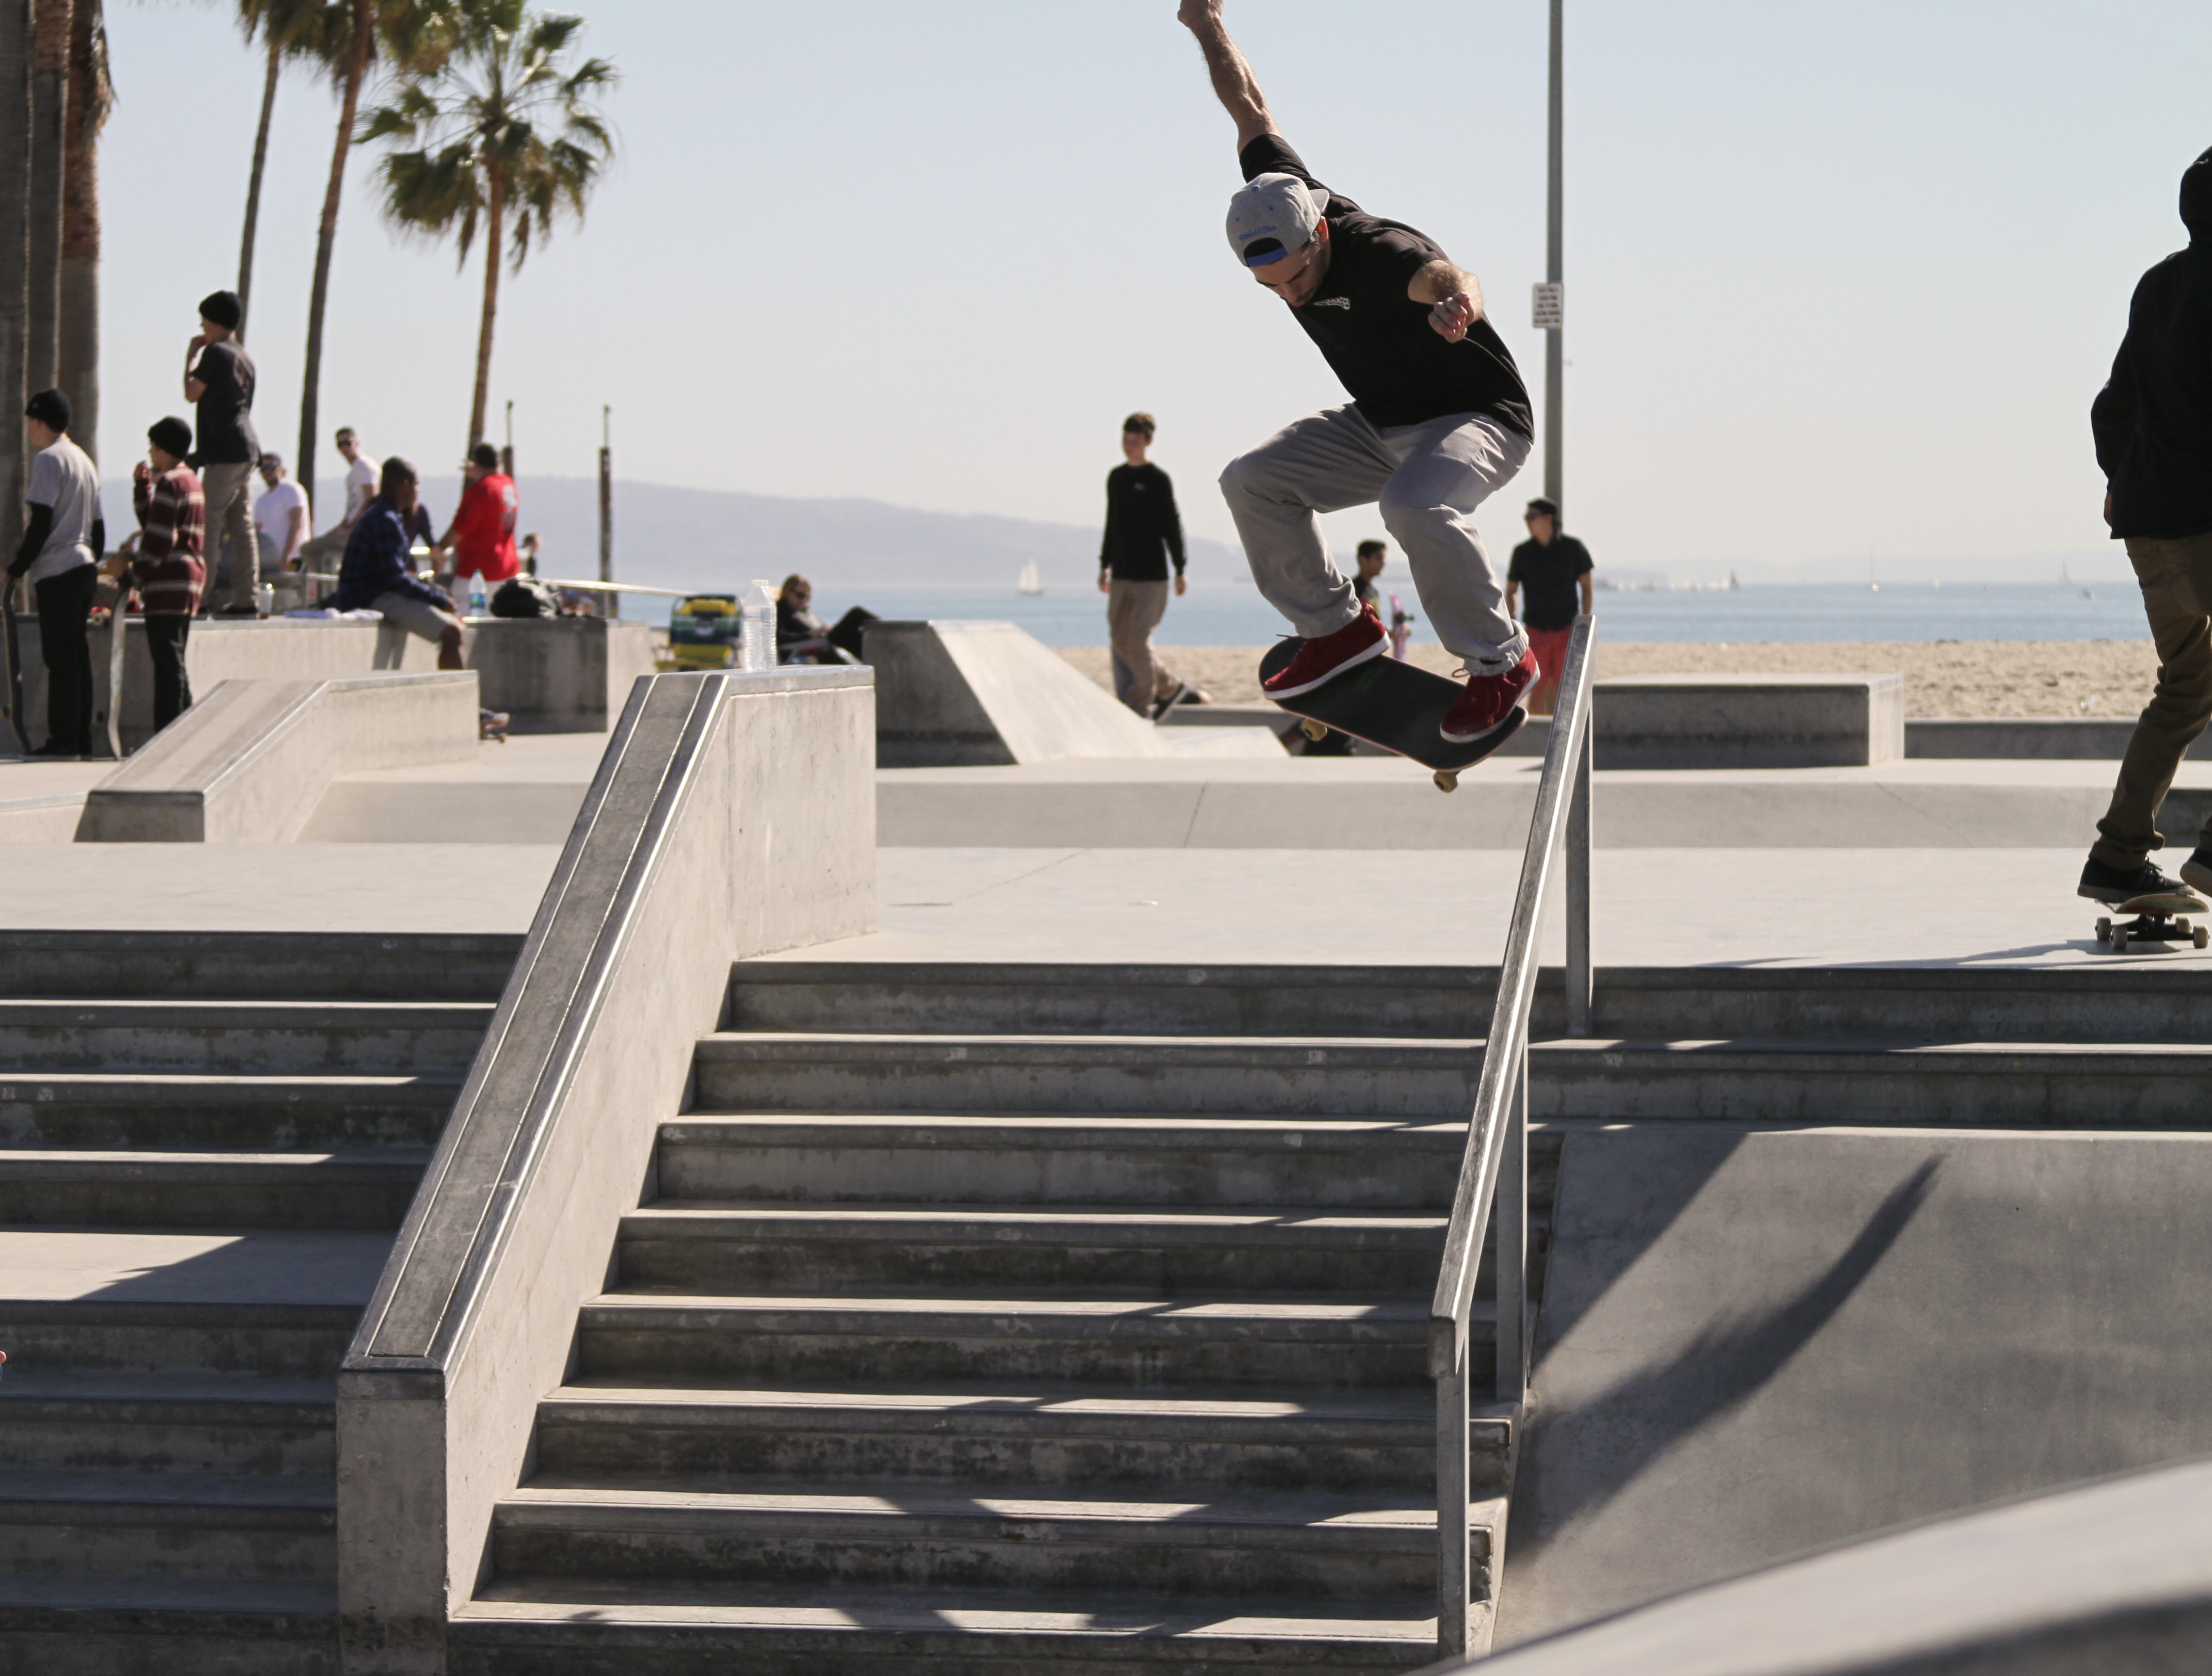 Skater in mid-air above the stairs and a rail at Venice